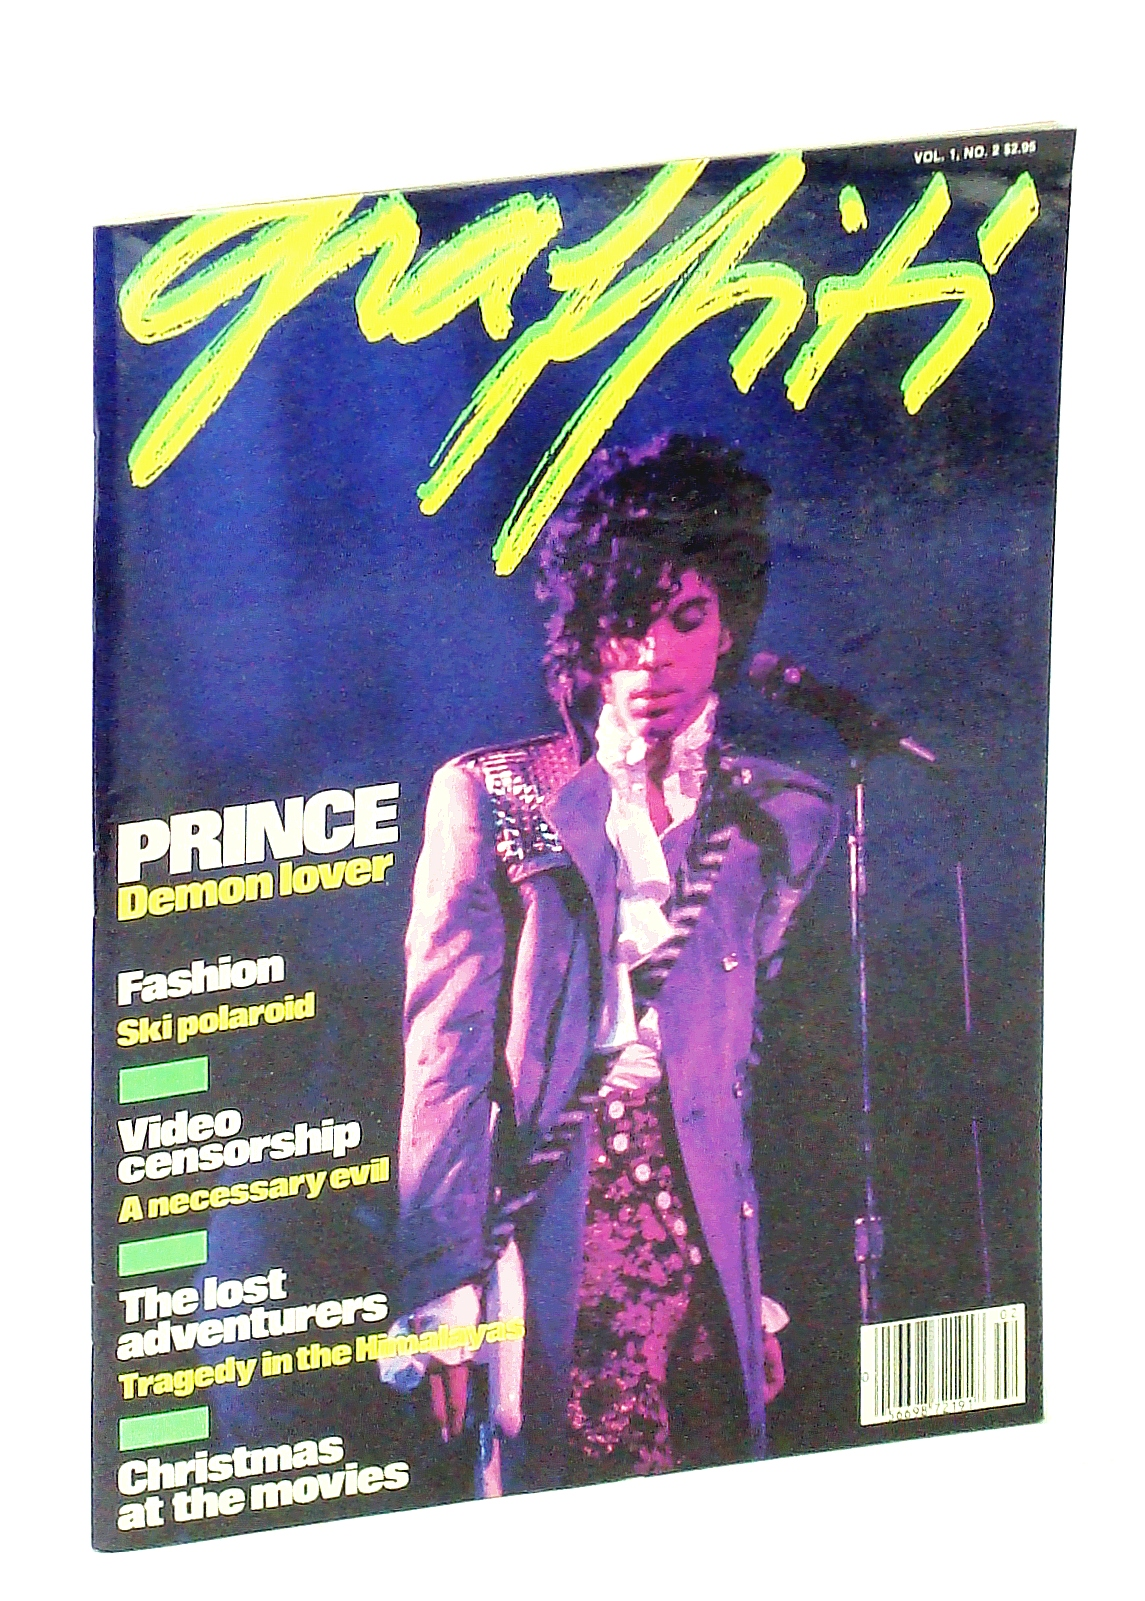 Image for Graffiti [Magazine] Vol 1 No. 2, November 1984 - Prince Cover Photo